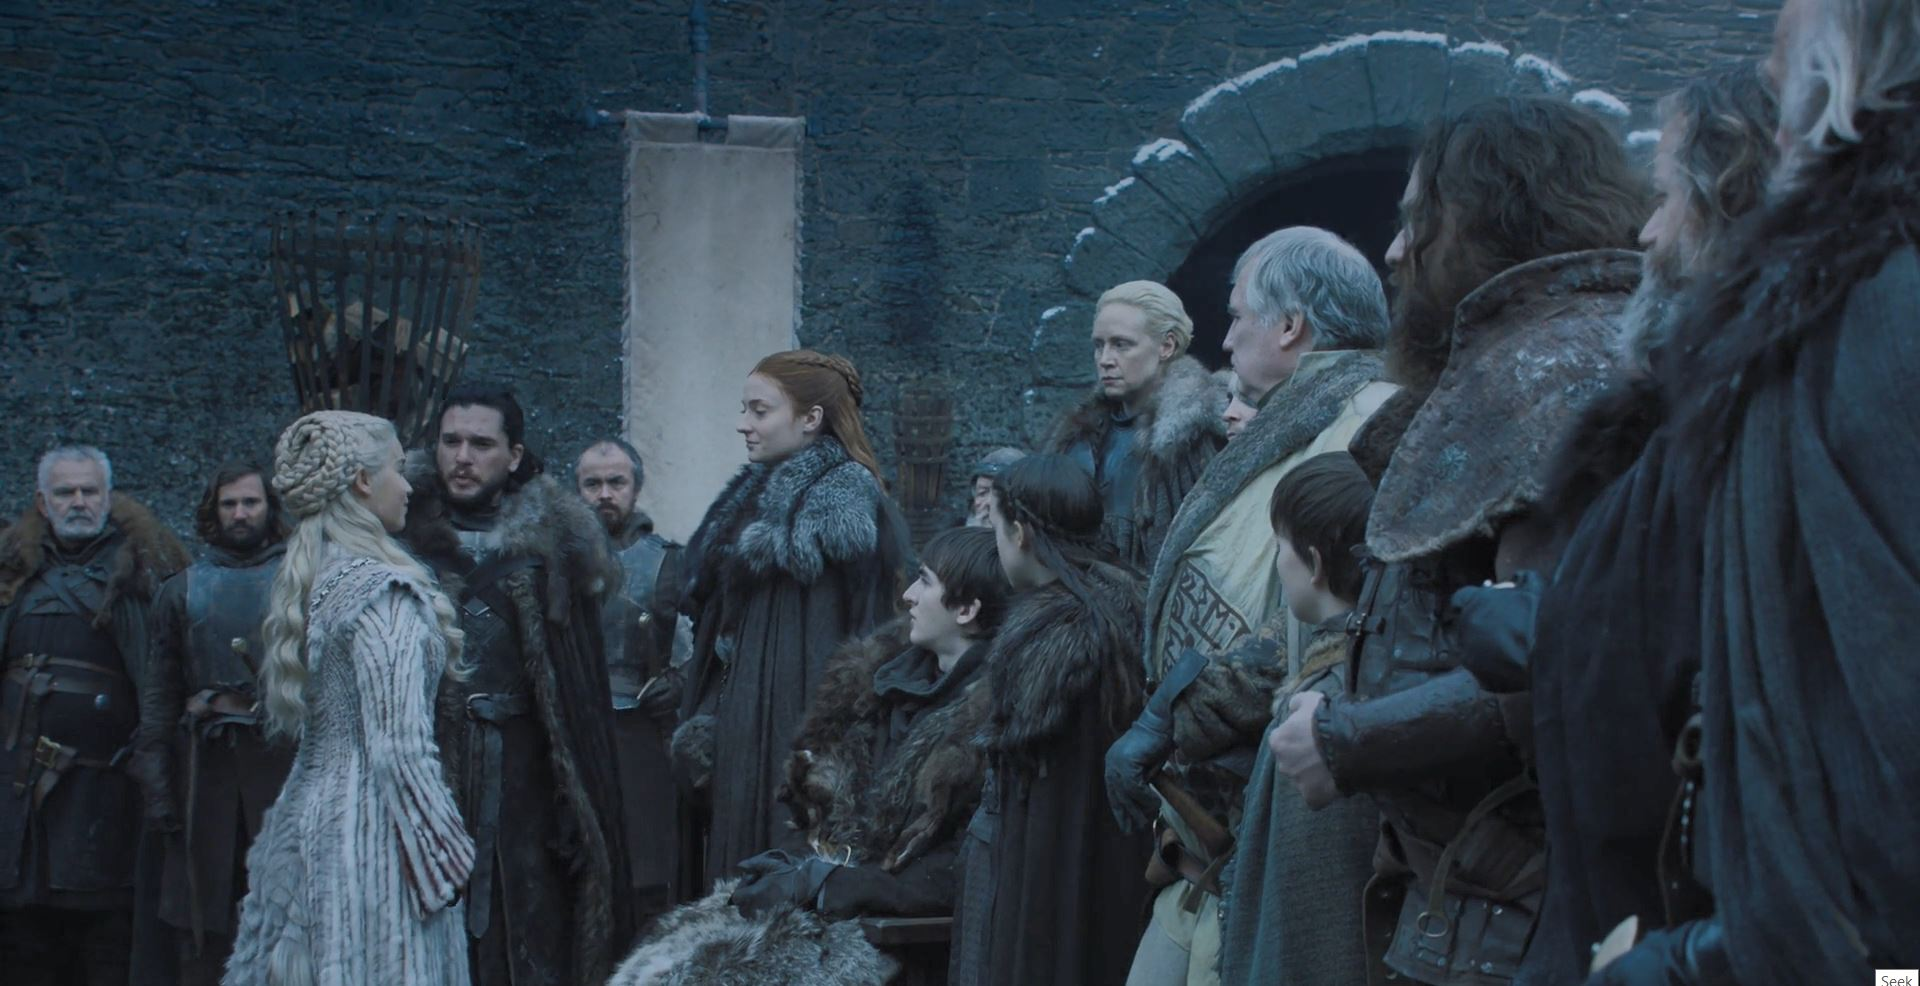 Game of Thrones S08E01 Winterfell Review - Dany meets the Stark family